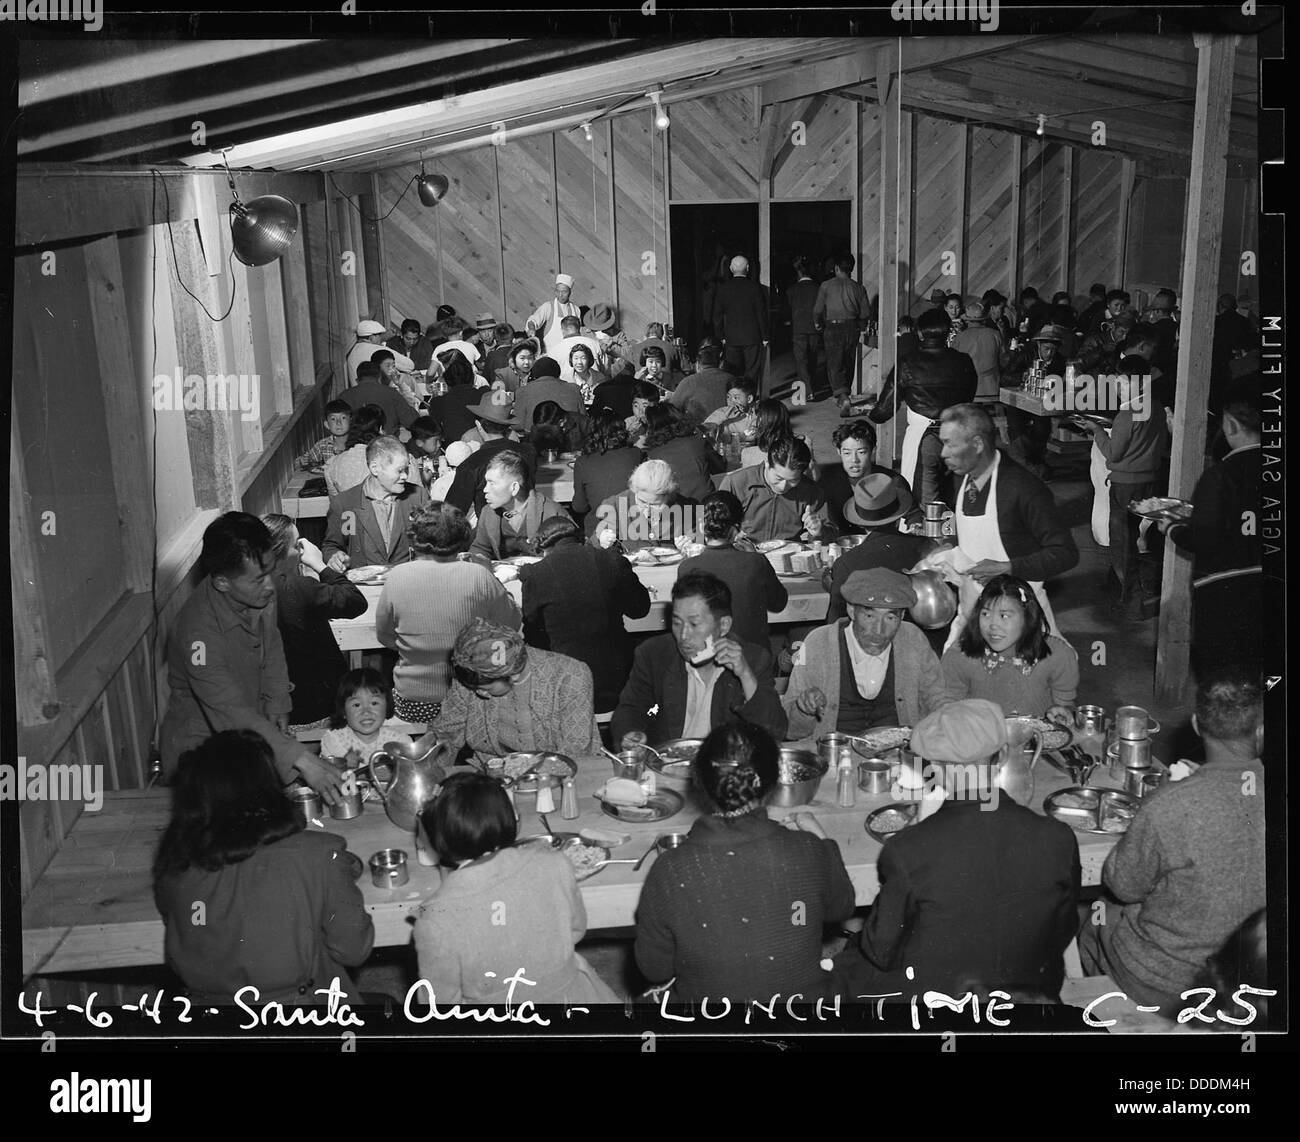 Arcadia, California. Lunch time cafeteria style, at the Santa Anita Assembly center where many thou . . . 537404 - Stock Image